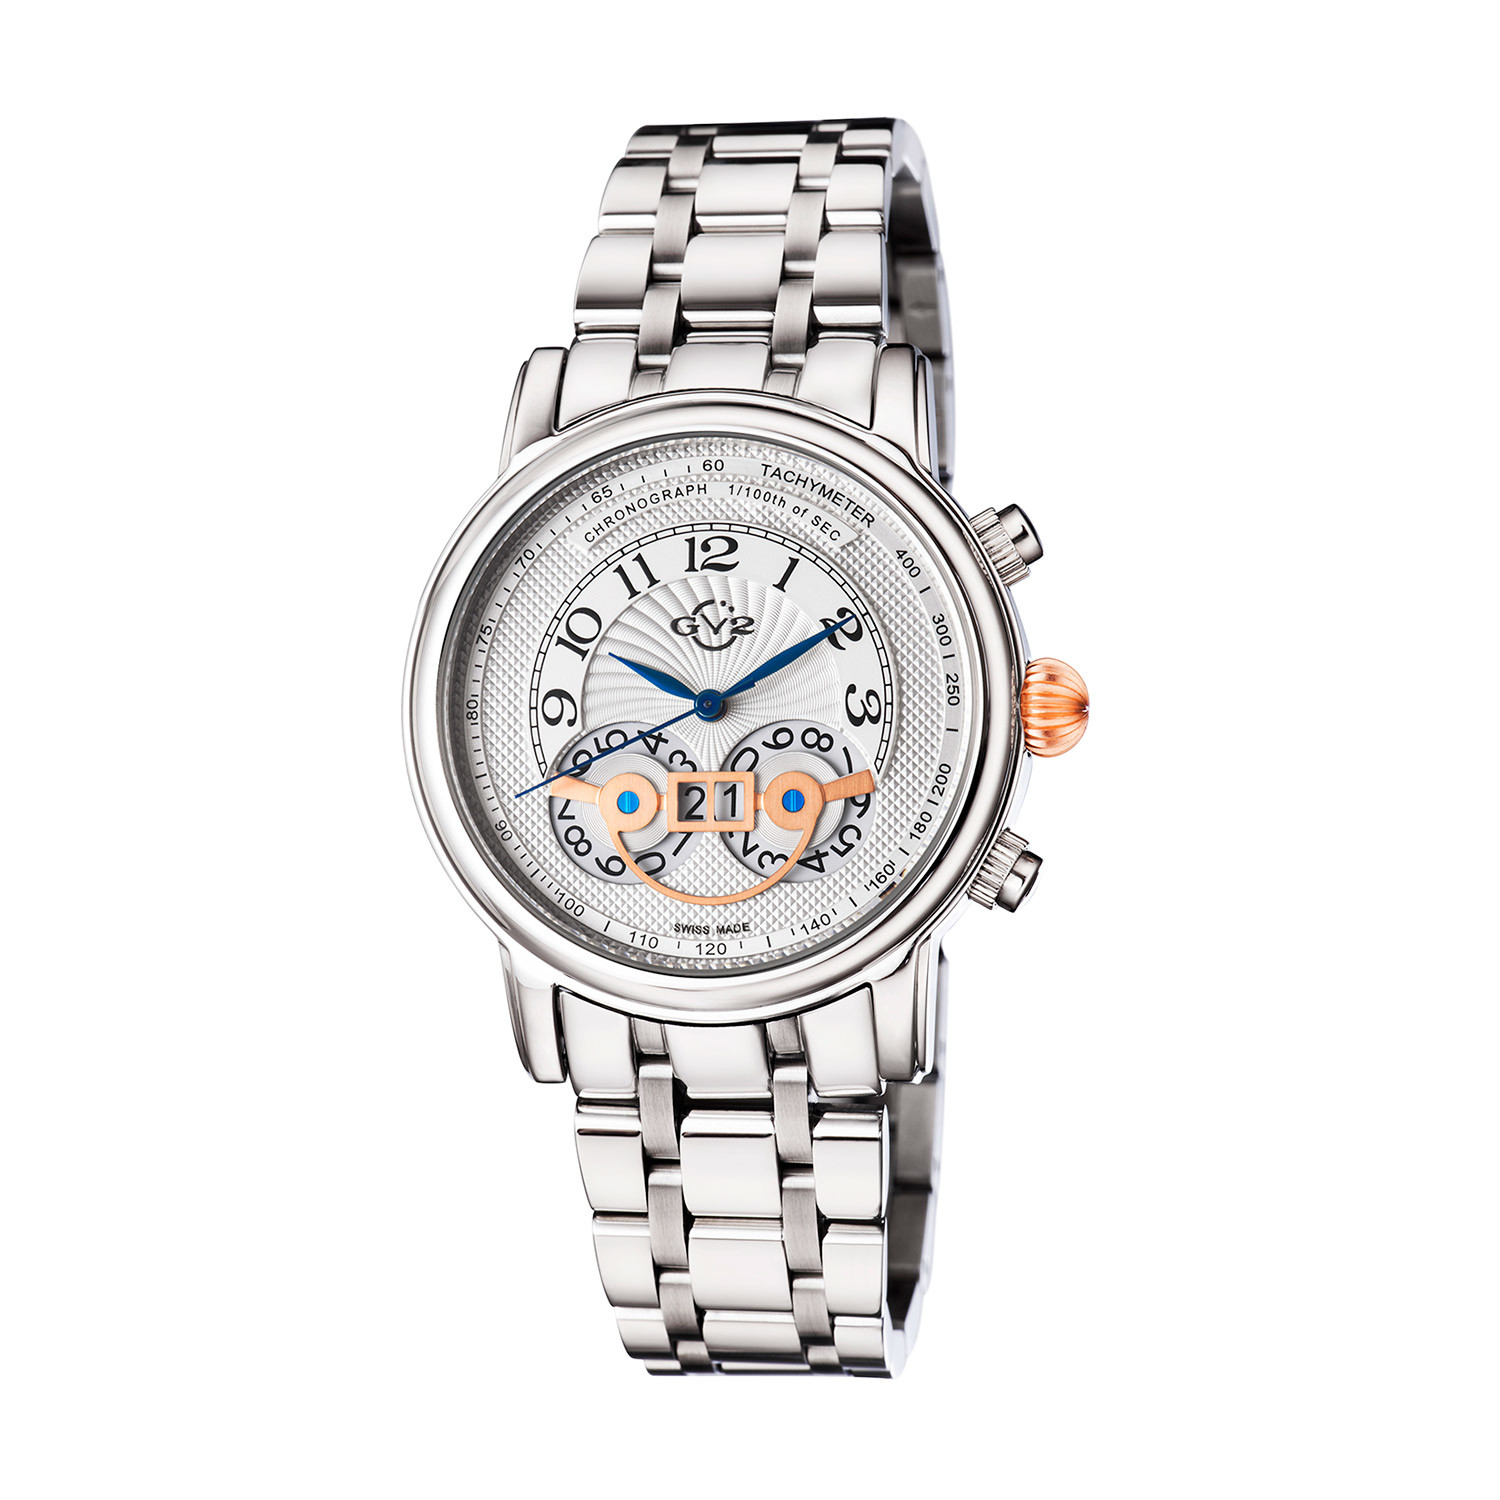 Gv2 By Gevril Montreux Chronograph Mens Watch 8100b In Metallic